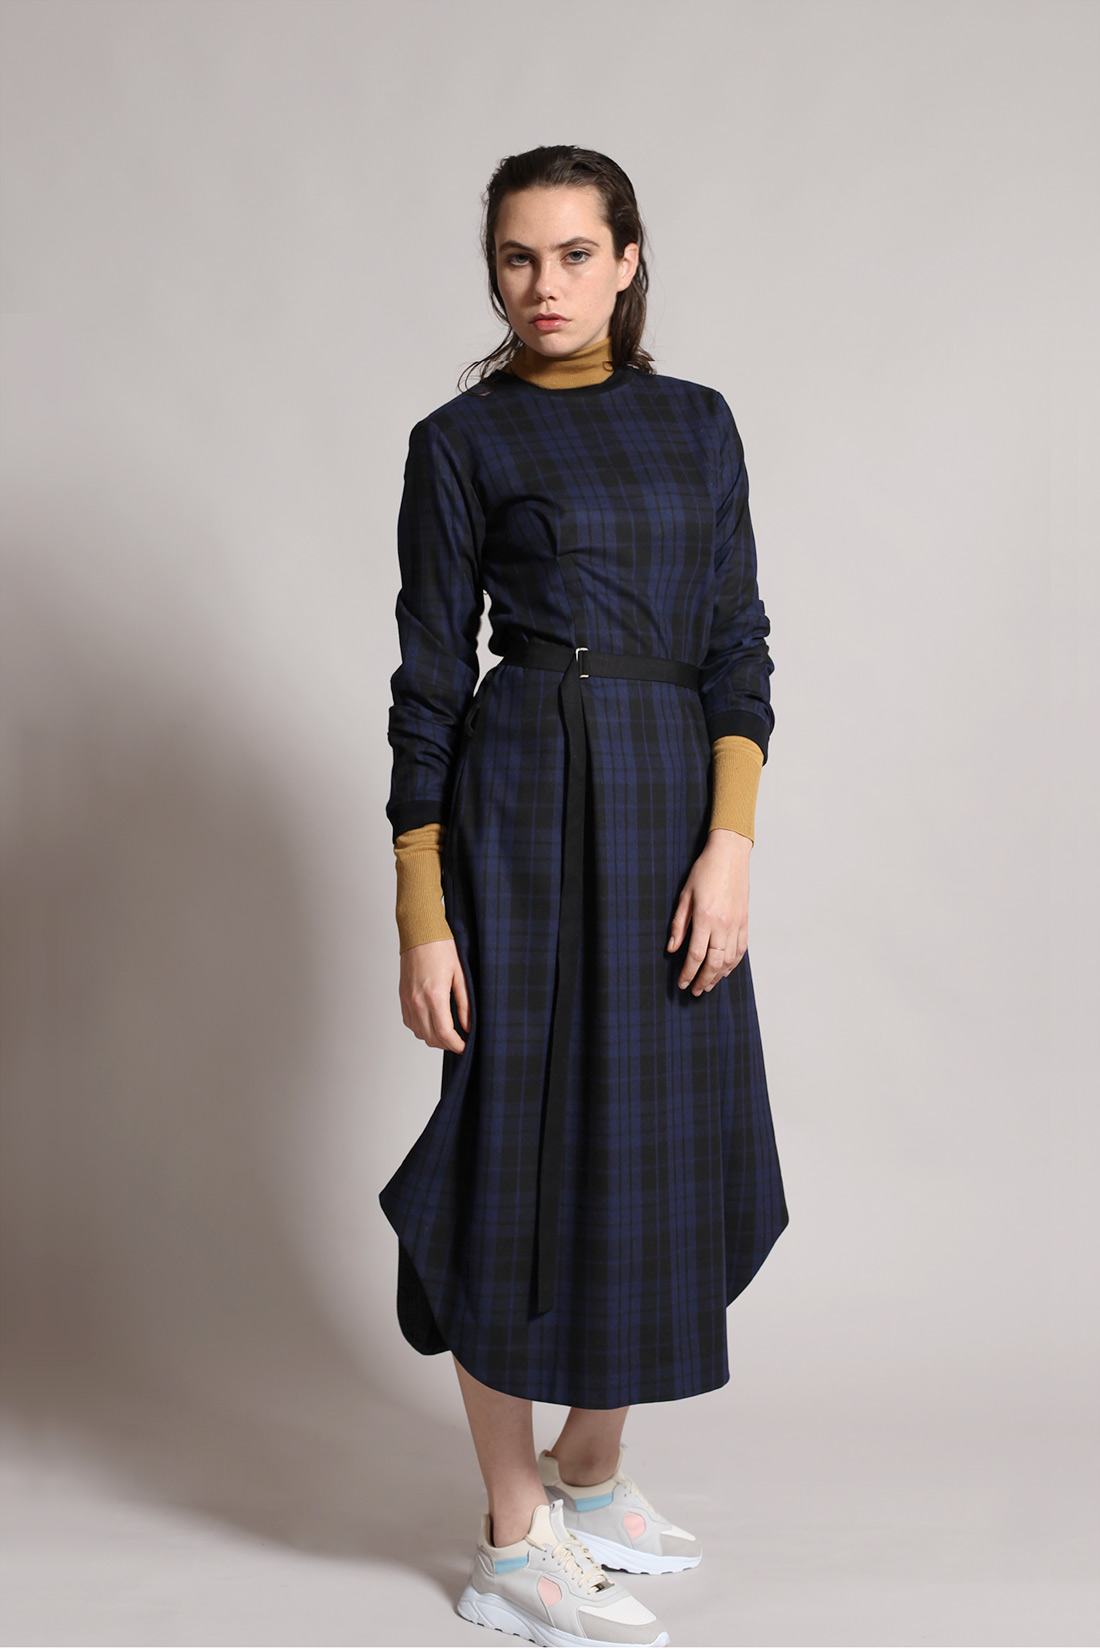 paula-immich-langes-kleid-aus-woll-flanell-mit-karo-muster-in-navy